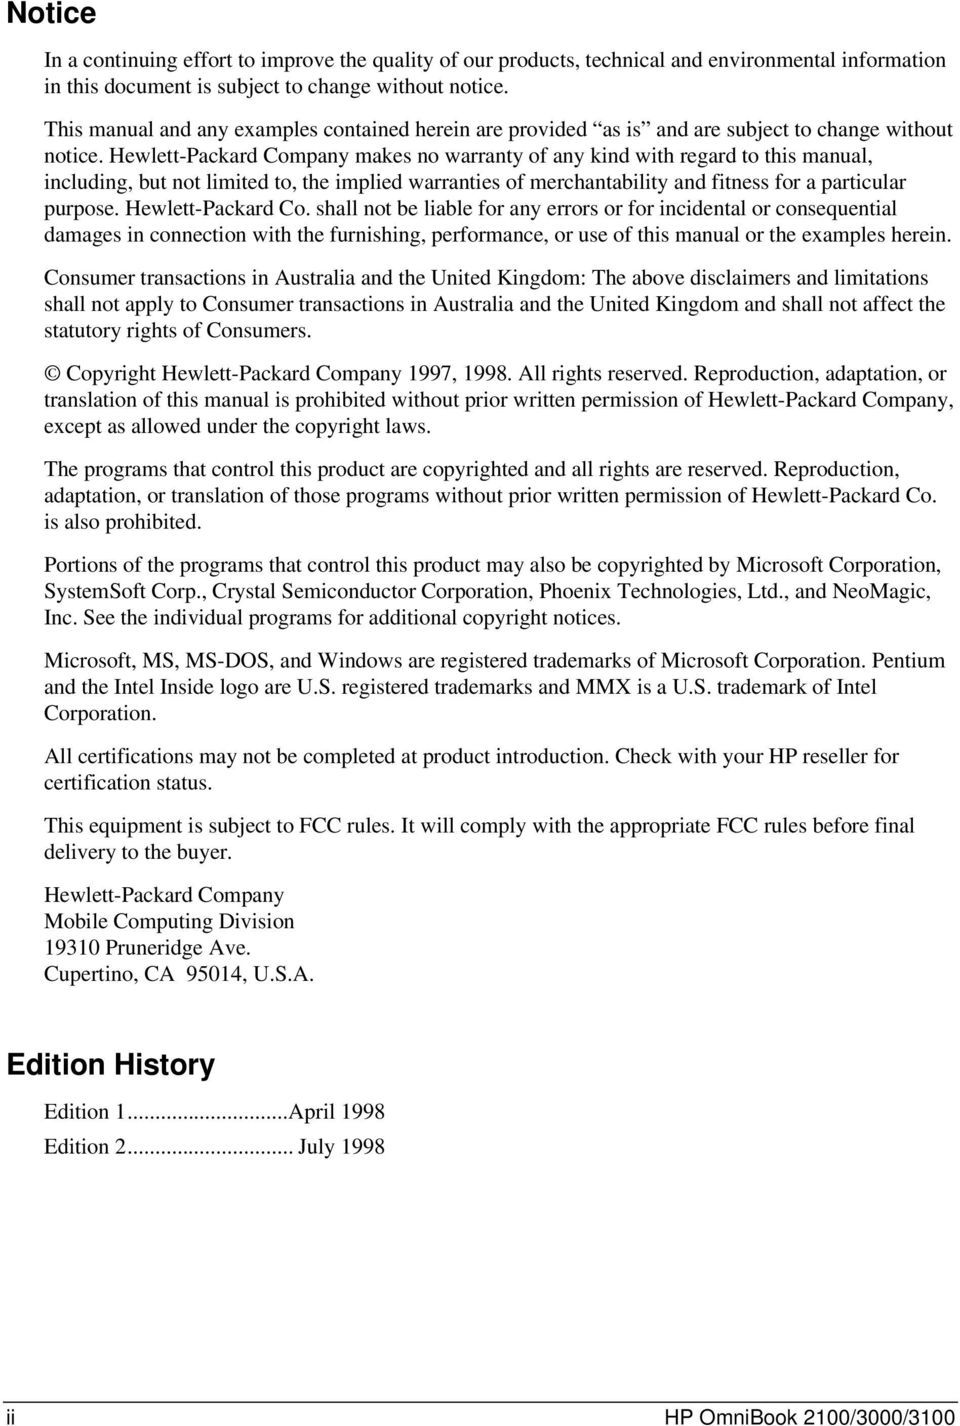 Hewlett-Packard Company makes no warranty of any kind with regard to this manual, including, but not limited to, the implied warranties of merchantability and fitness for a particular purpose.